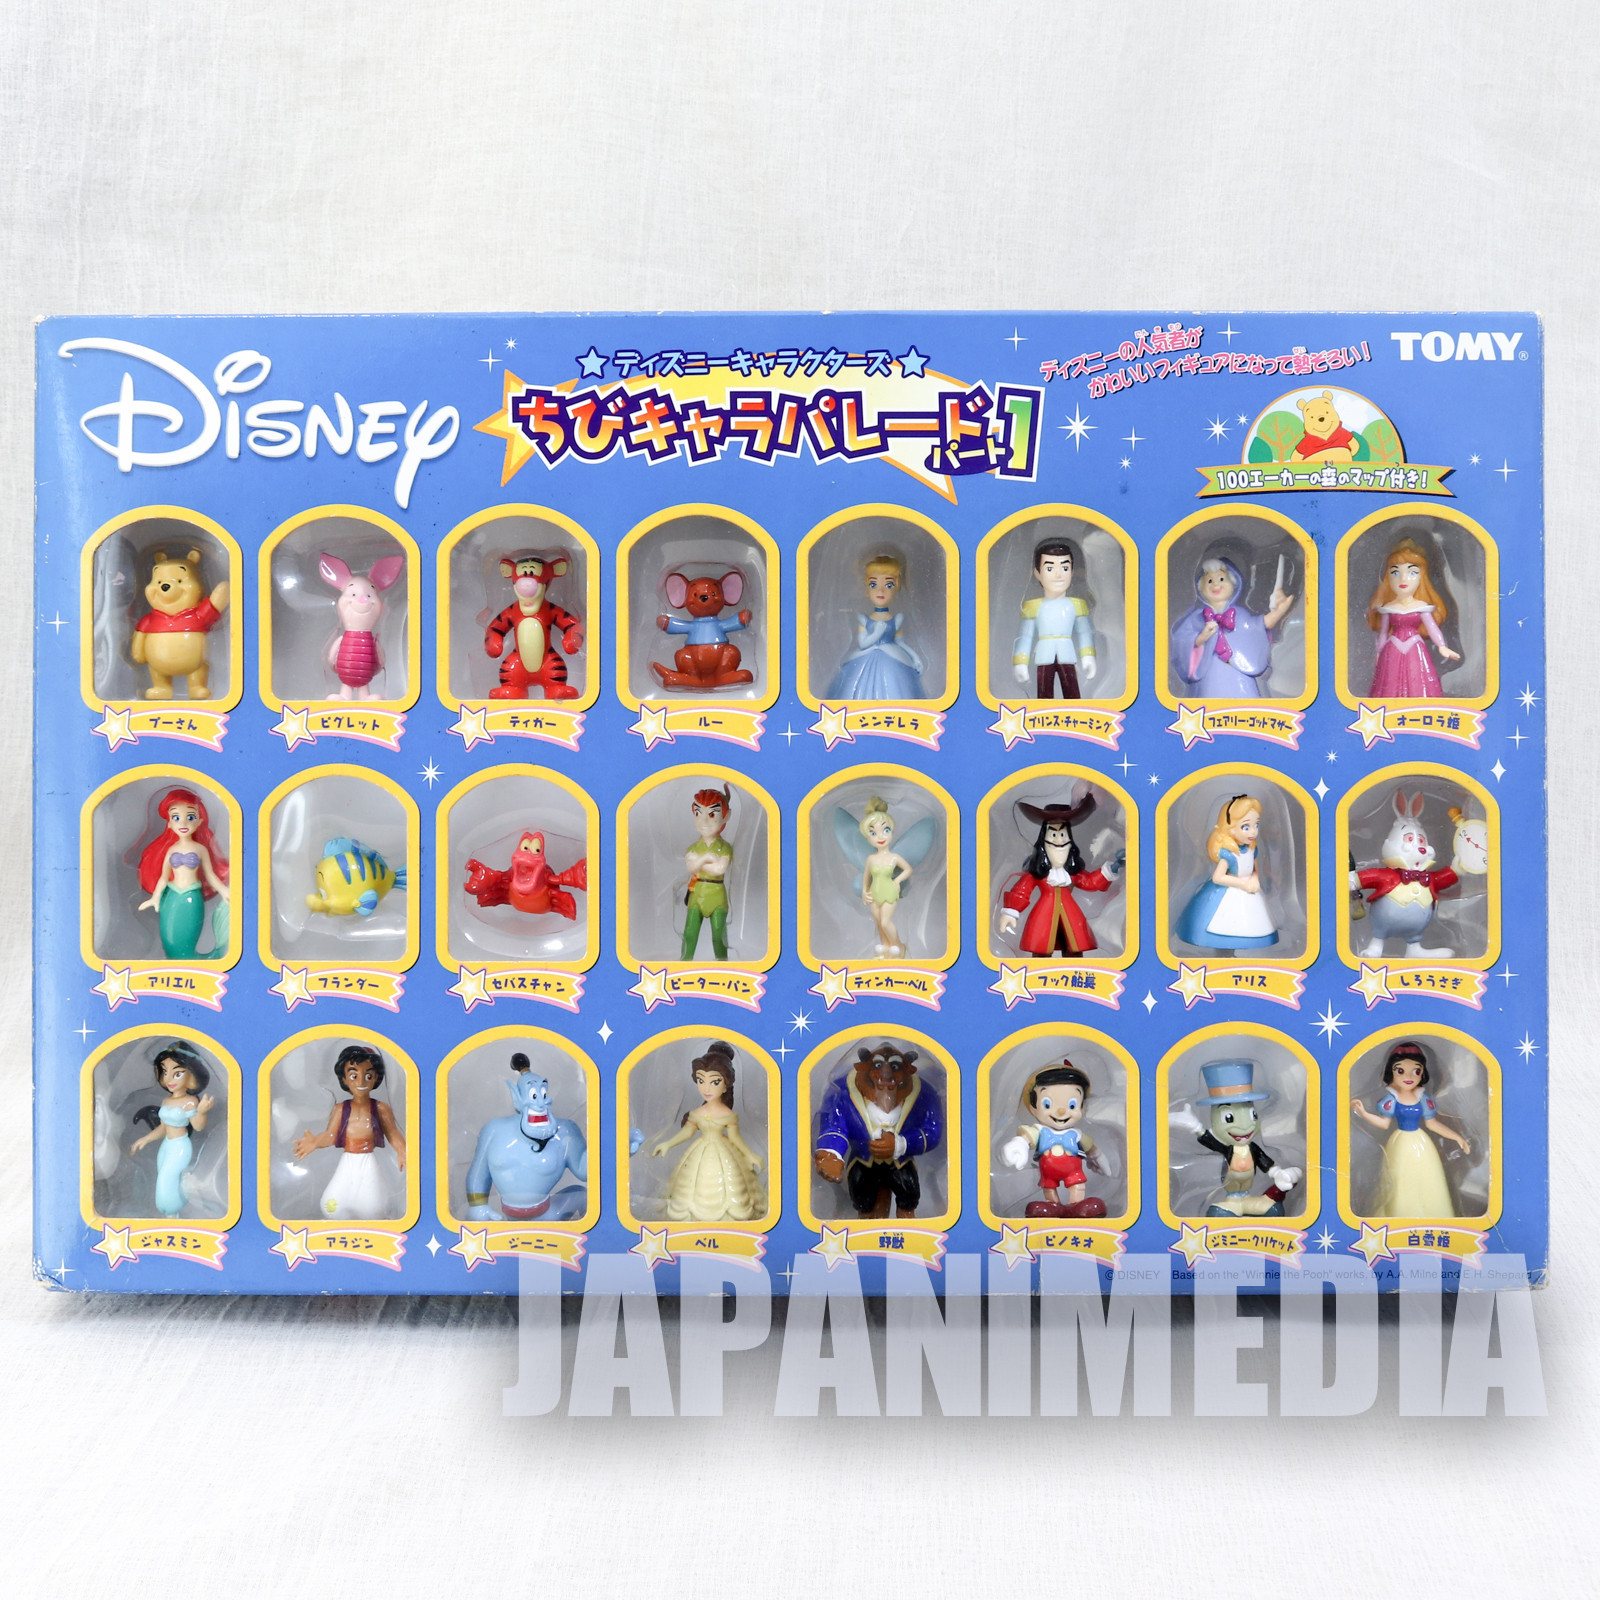 Disney Characters Chibi Chara Parade Vol.1 Mascot Figure 24pc set Tomy JAPAN